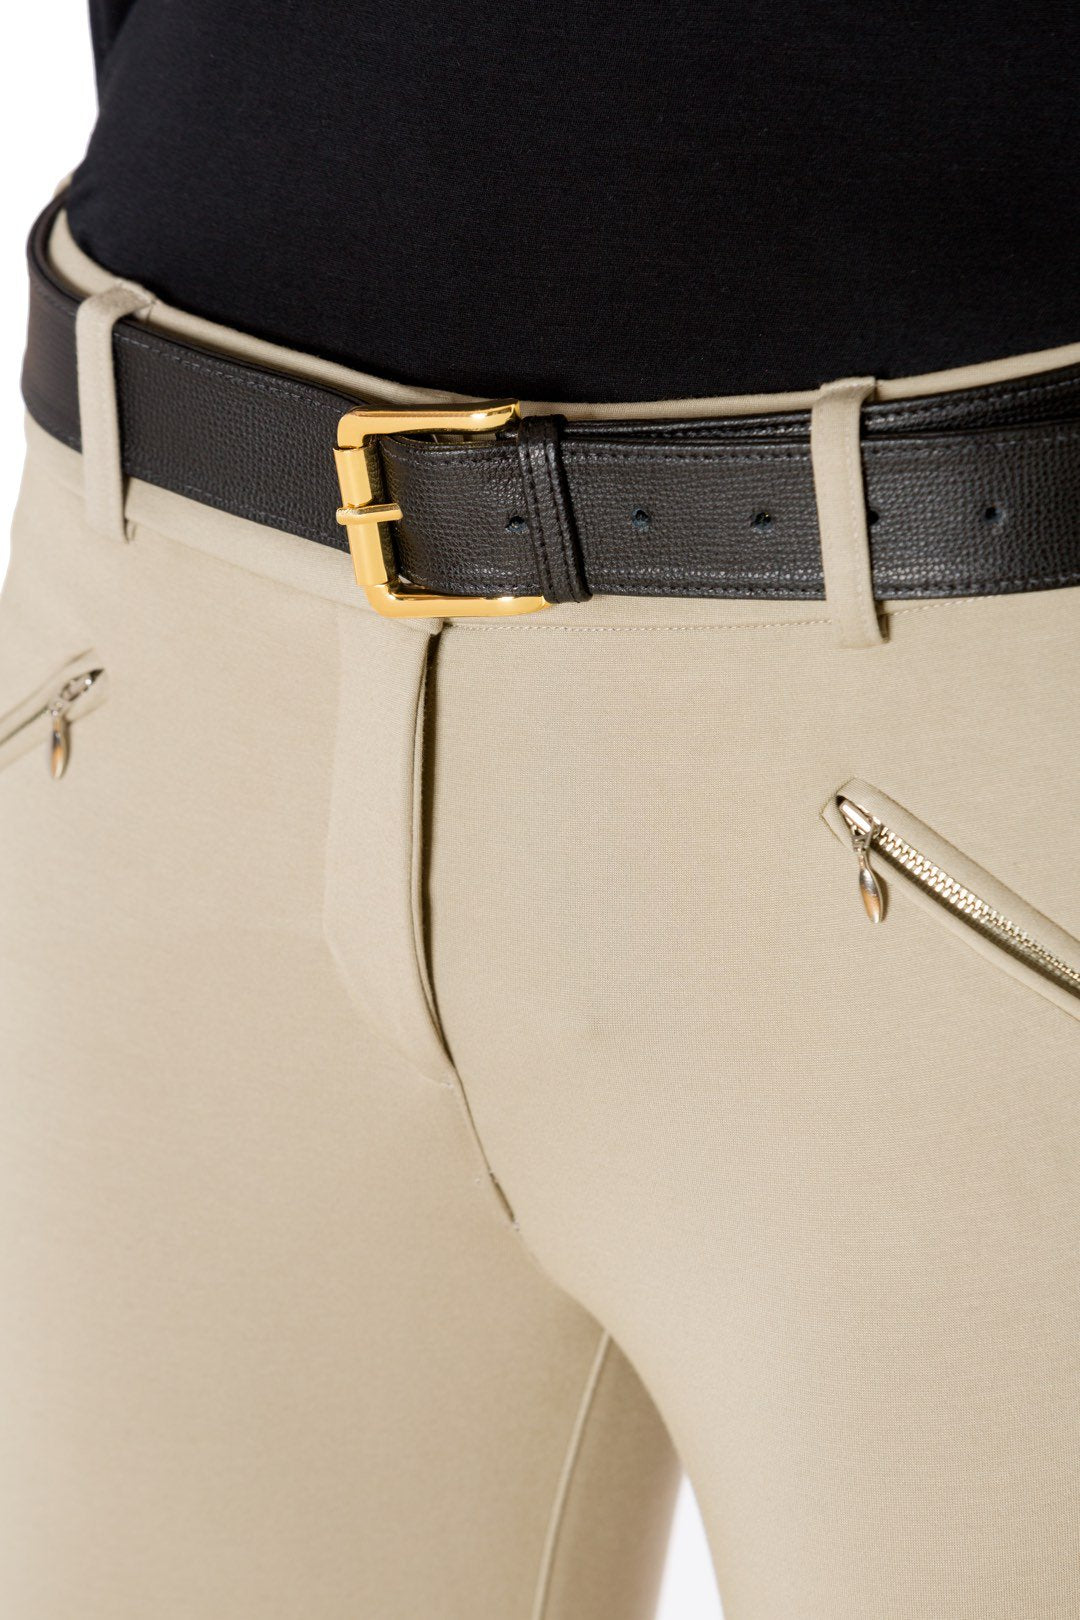 Onyx-The Equestrian Belt - Free x Rein